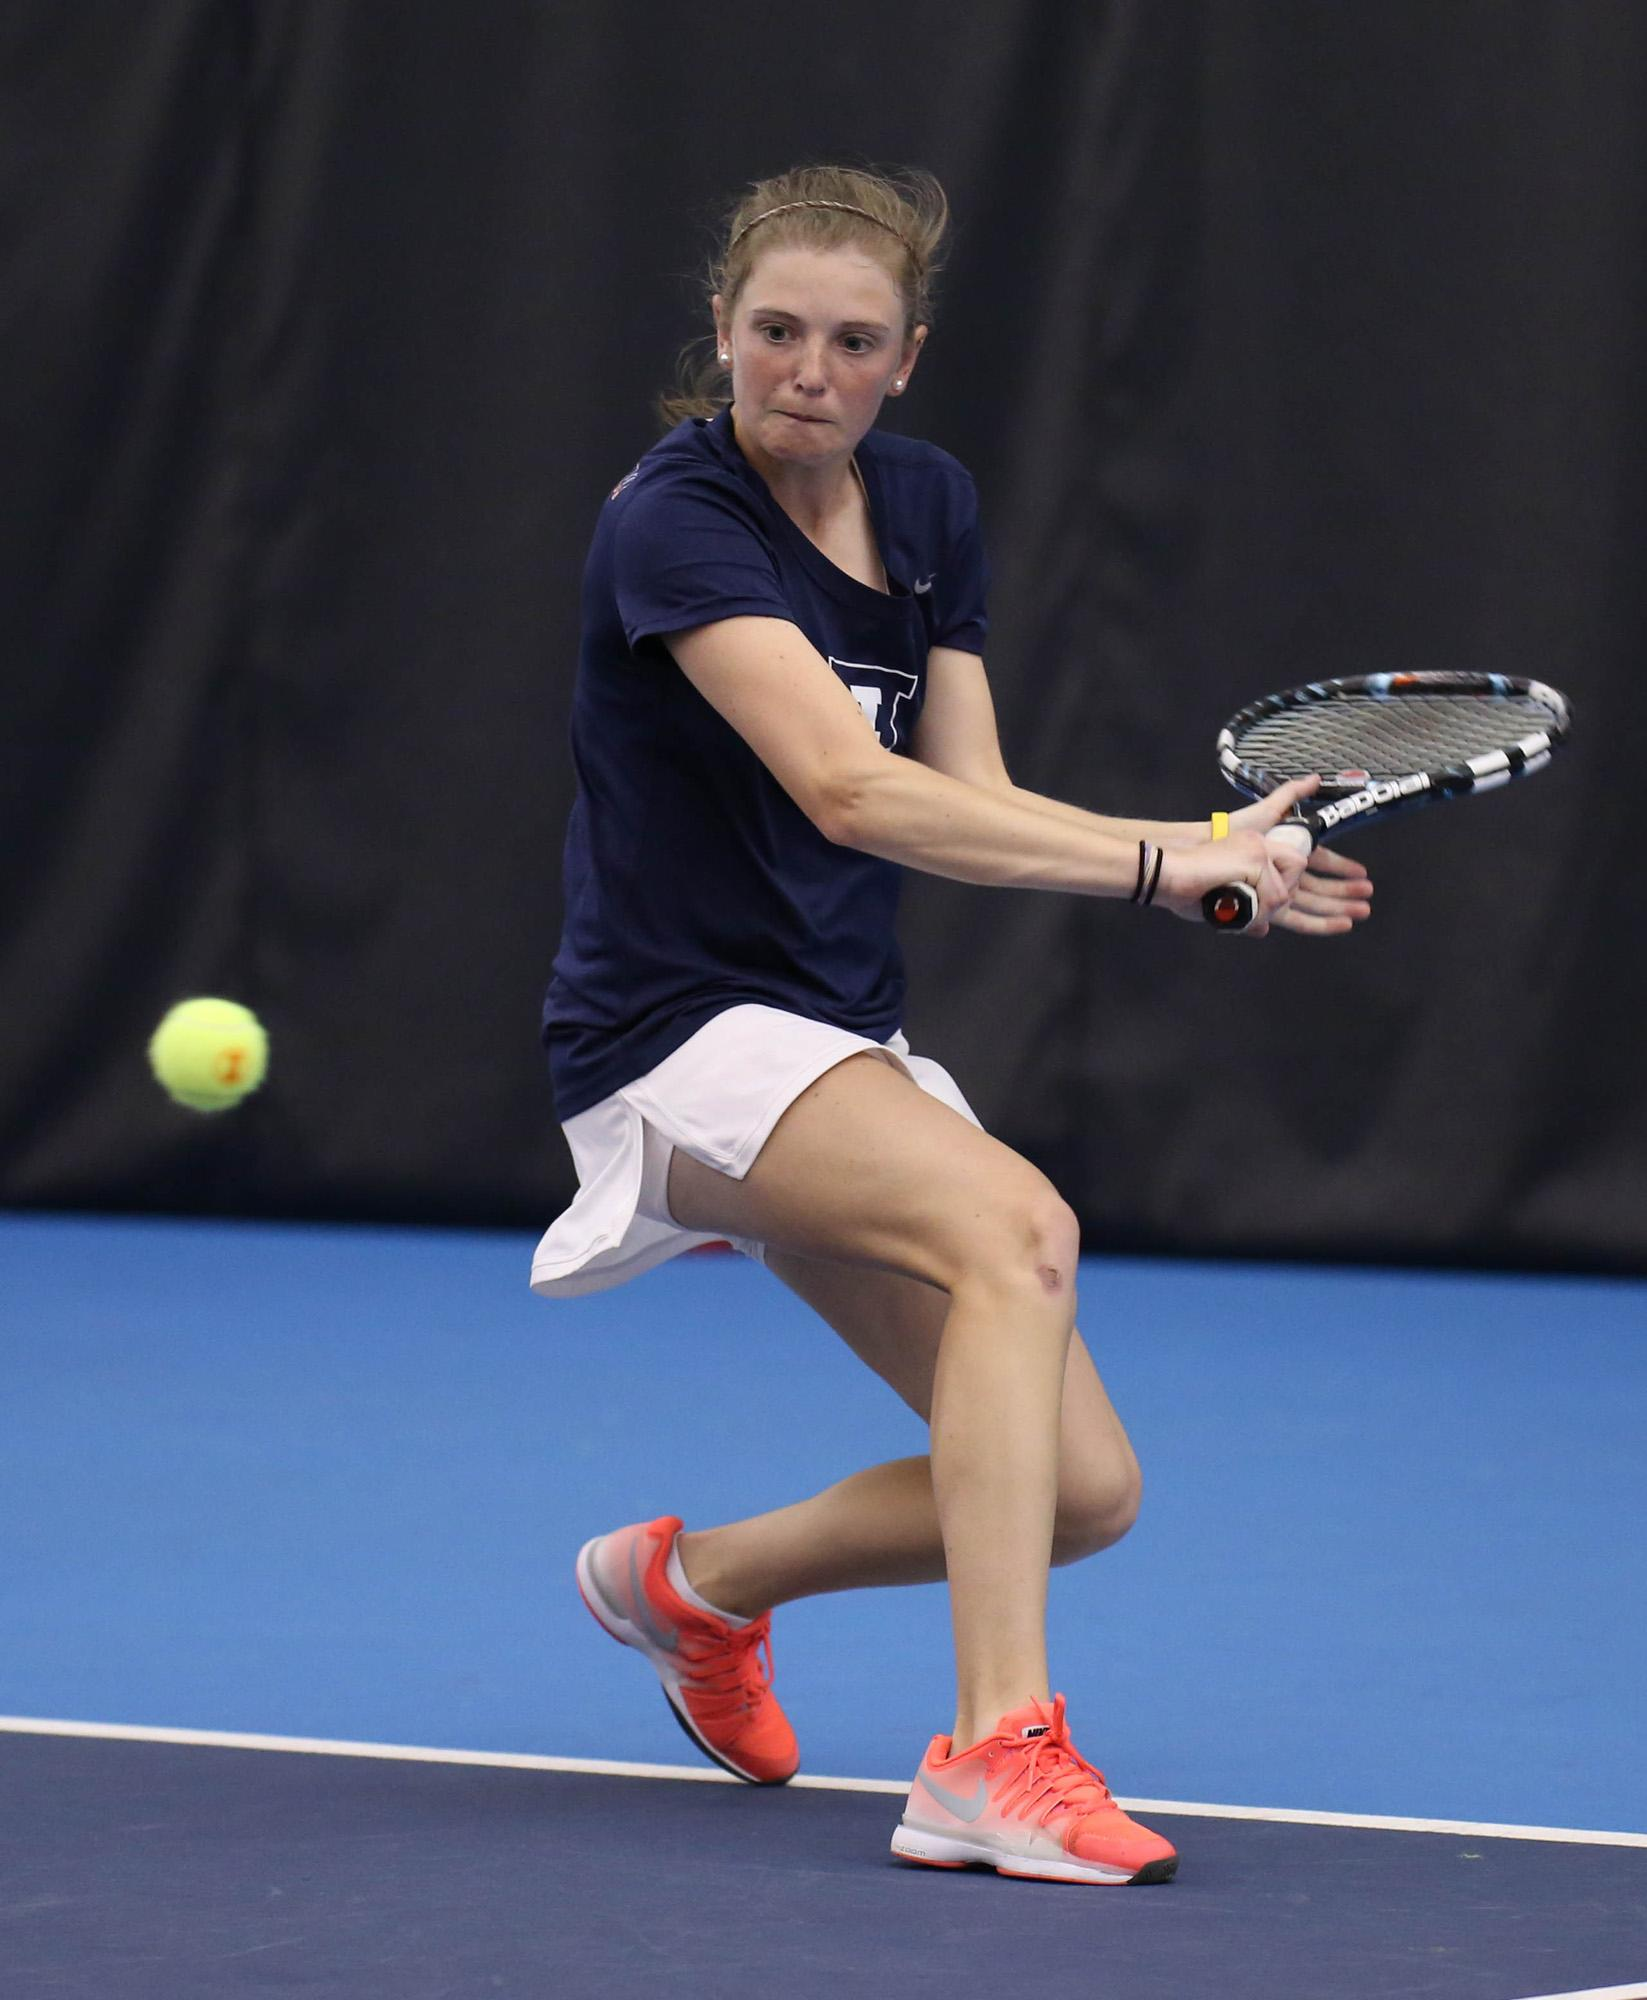 Illinois Alexis Casati attempts to return the ball during the match against Iowa at Atkins Tennis Center, on April 19, 2015. The Illini won 6-1.